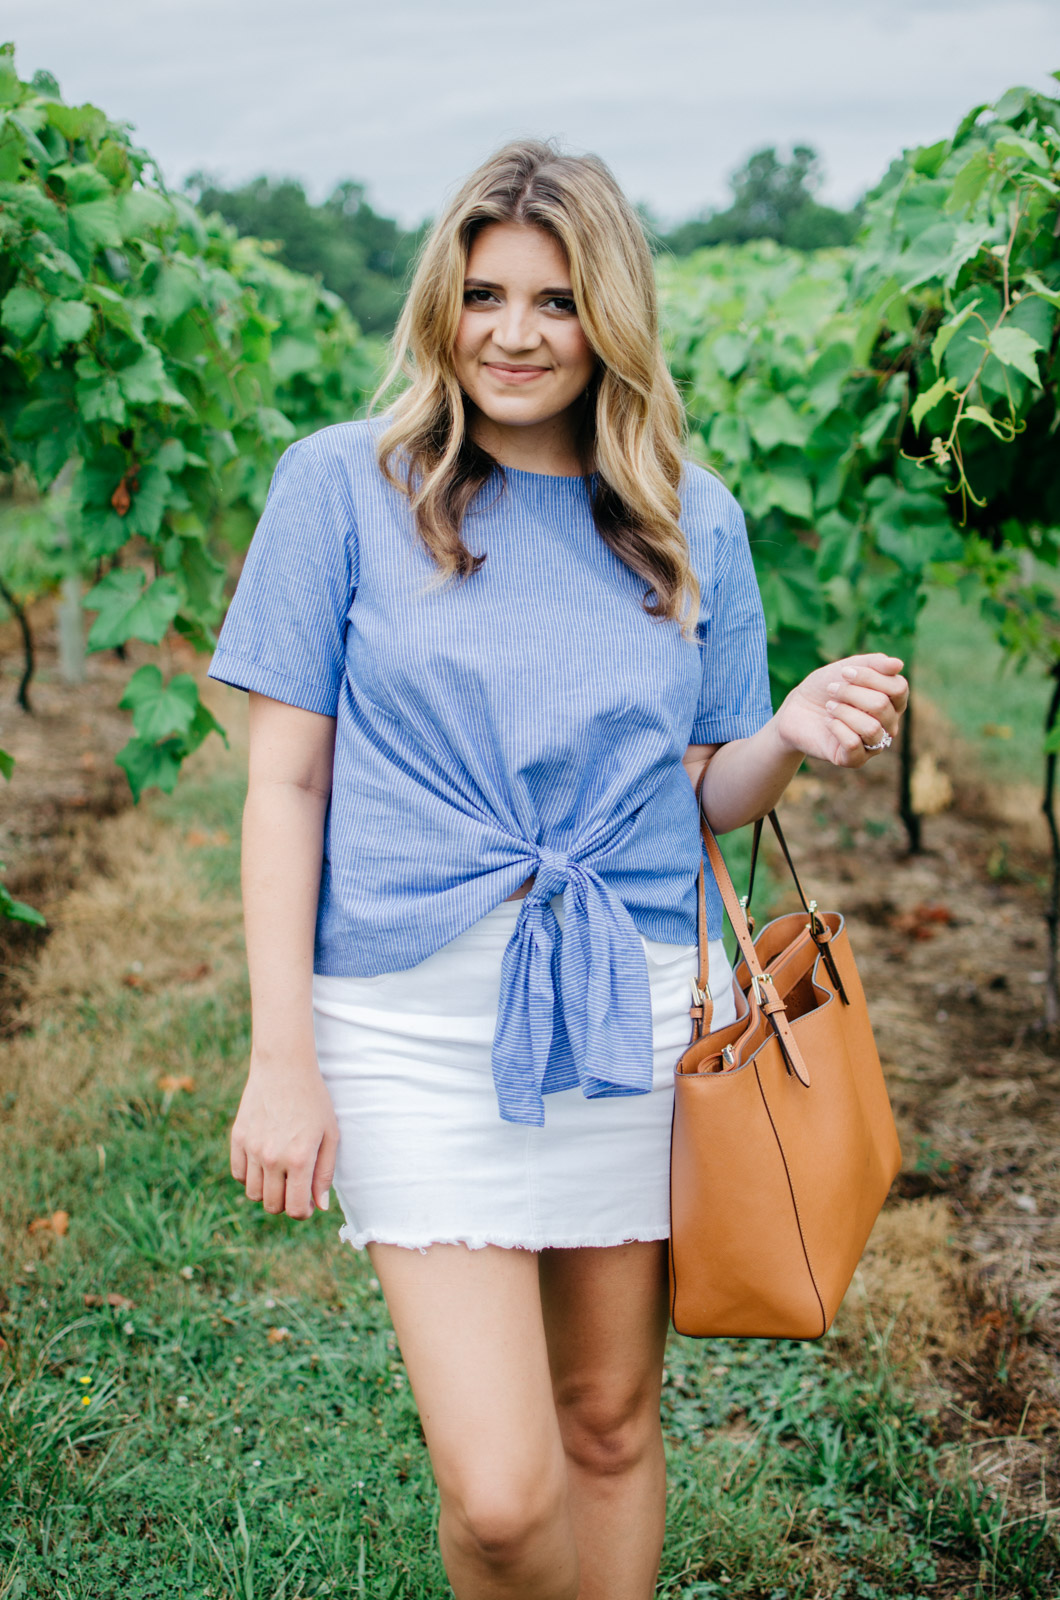 winery outfit idea - tie front top | Want more cute Summer outfits? Head to bylaurenm.com!